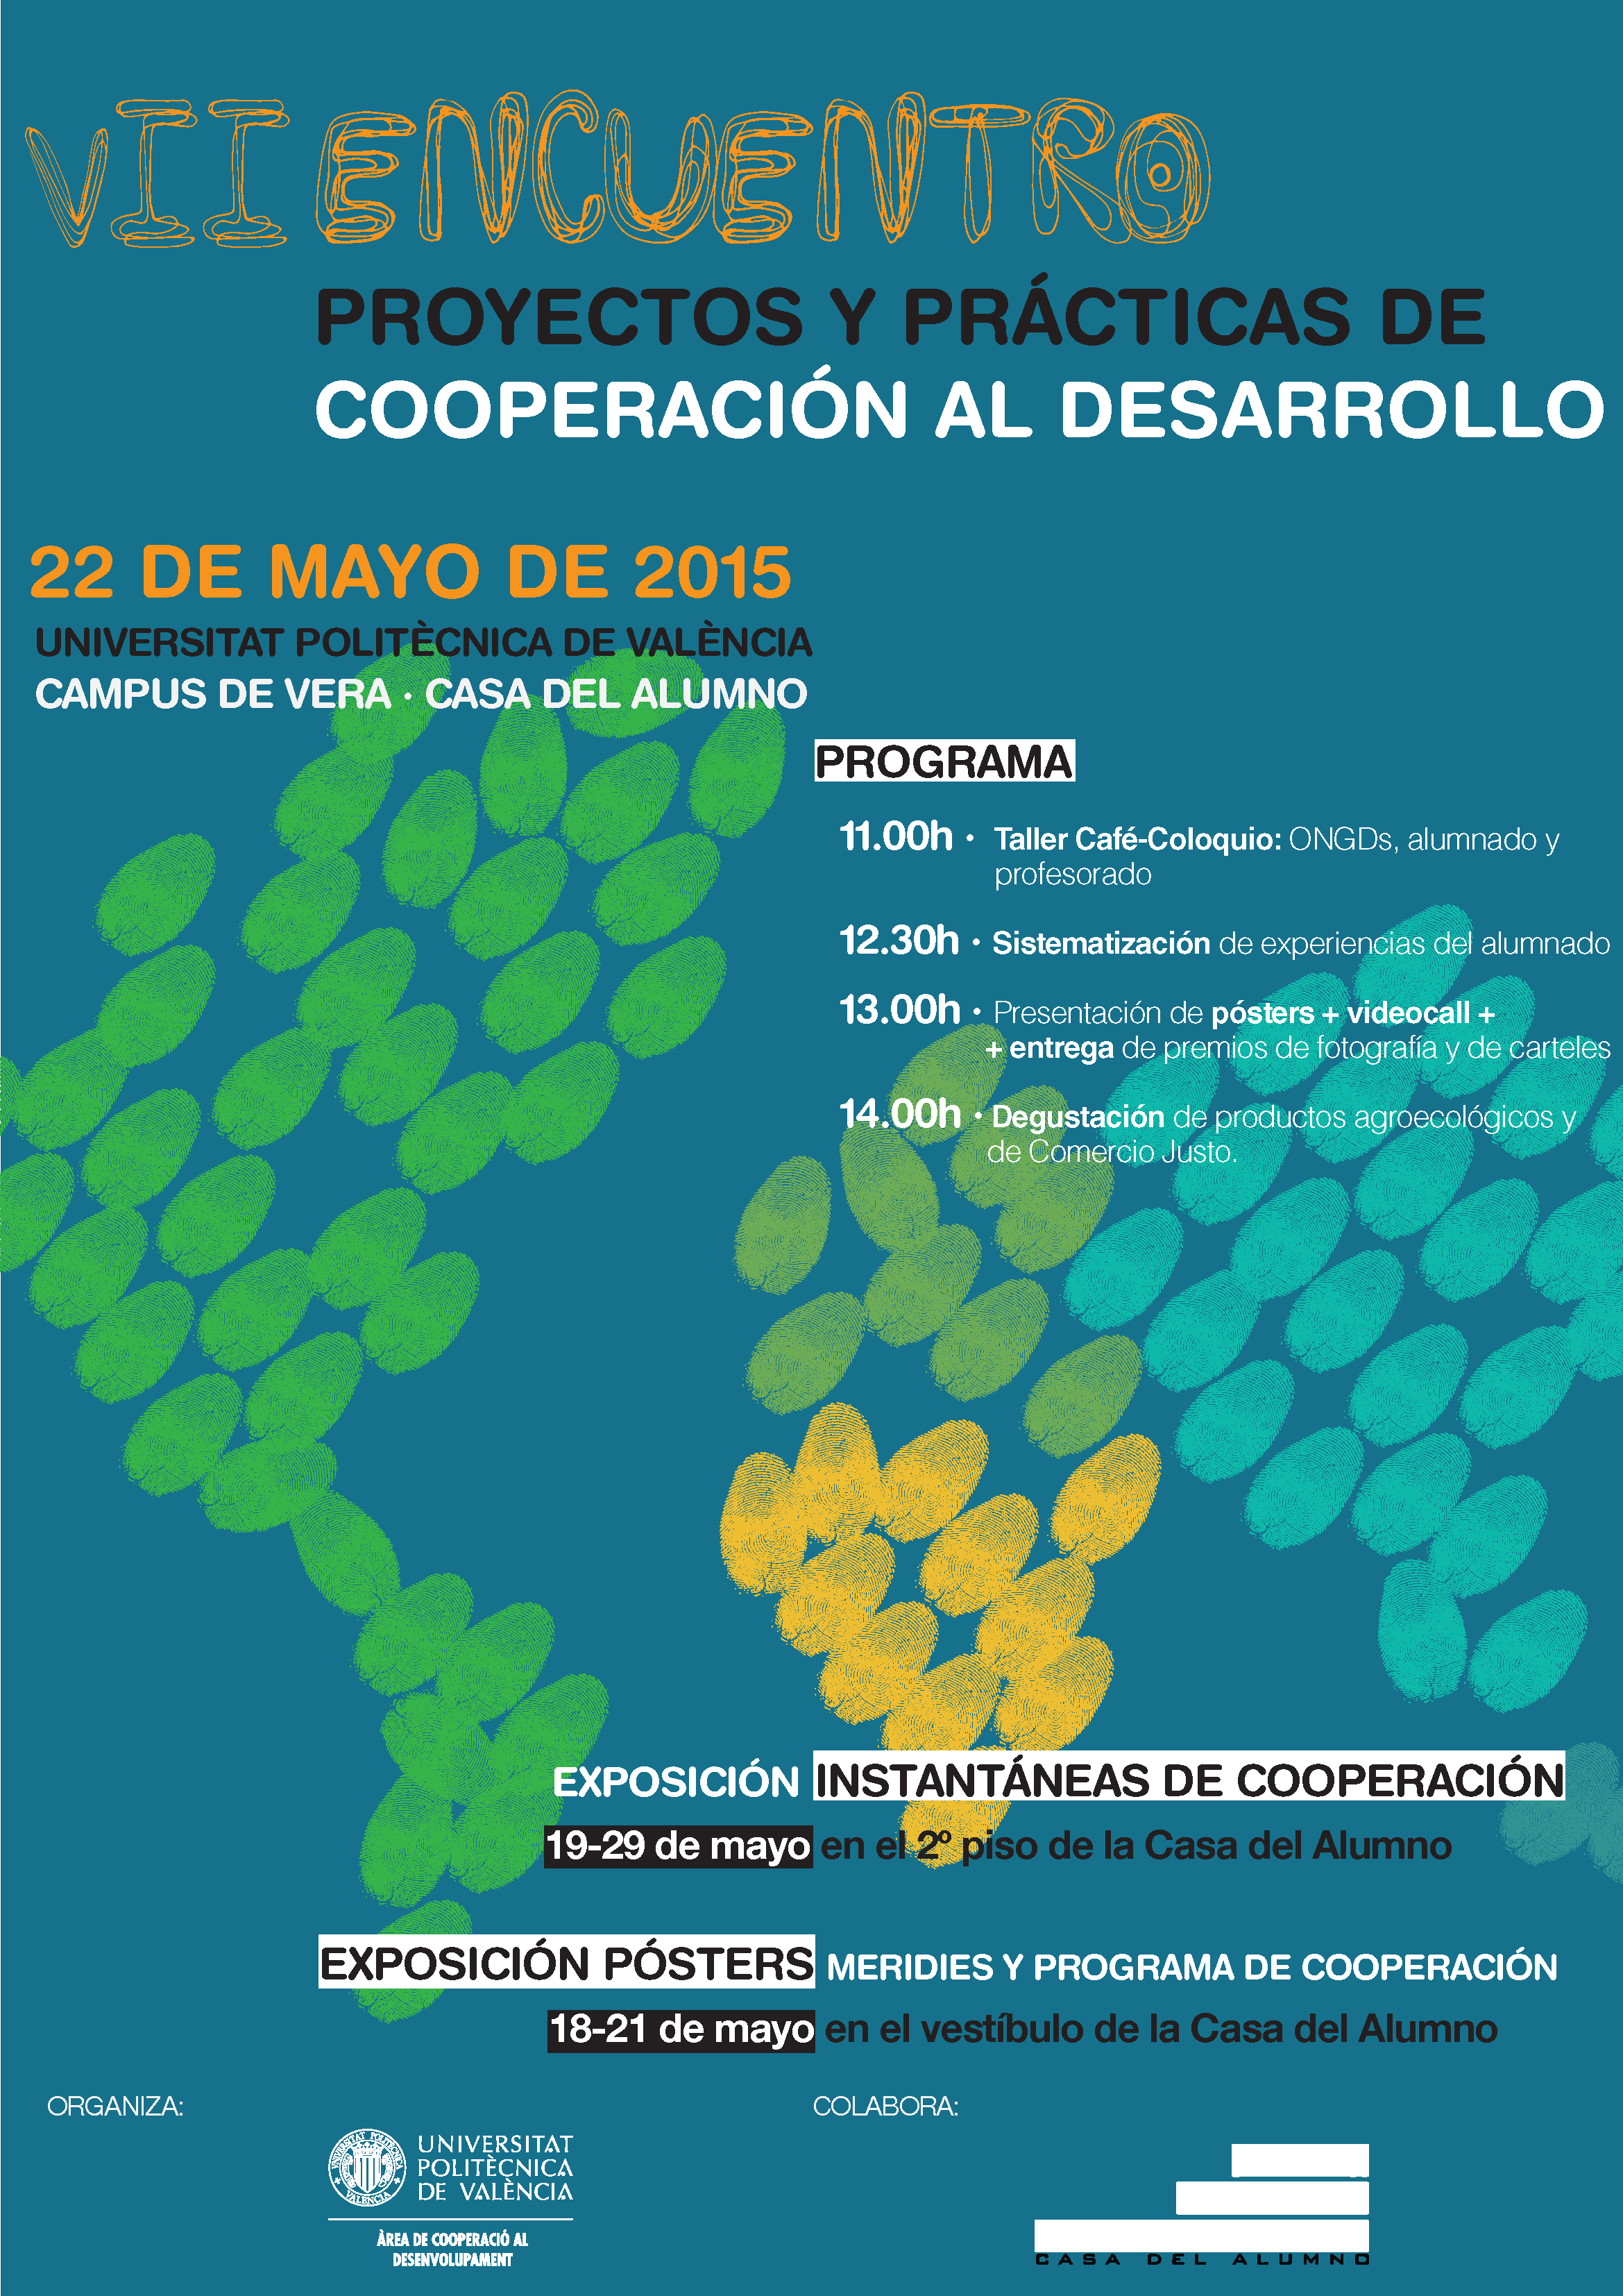 http://www.upv.es/entidades/CCD/infoweb/ccd/info/U0688248.png